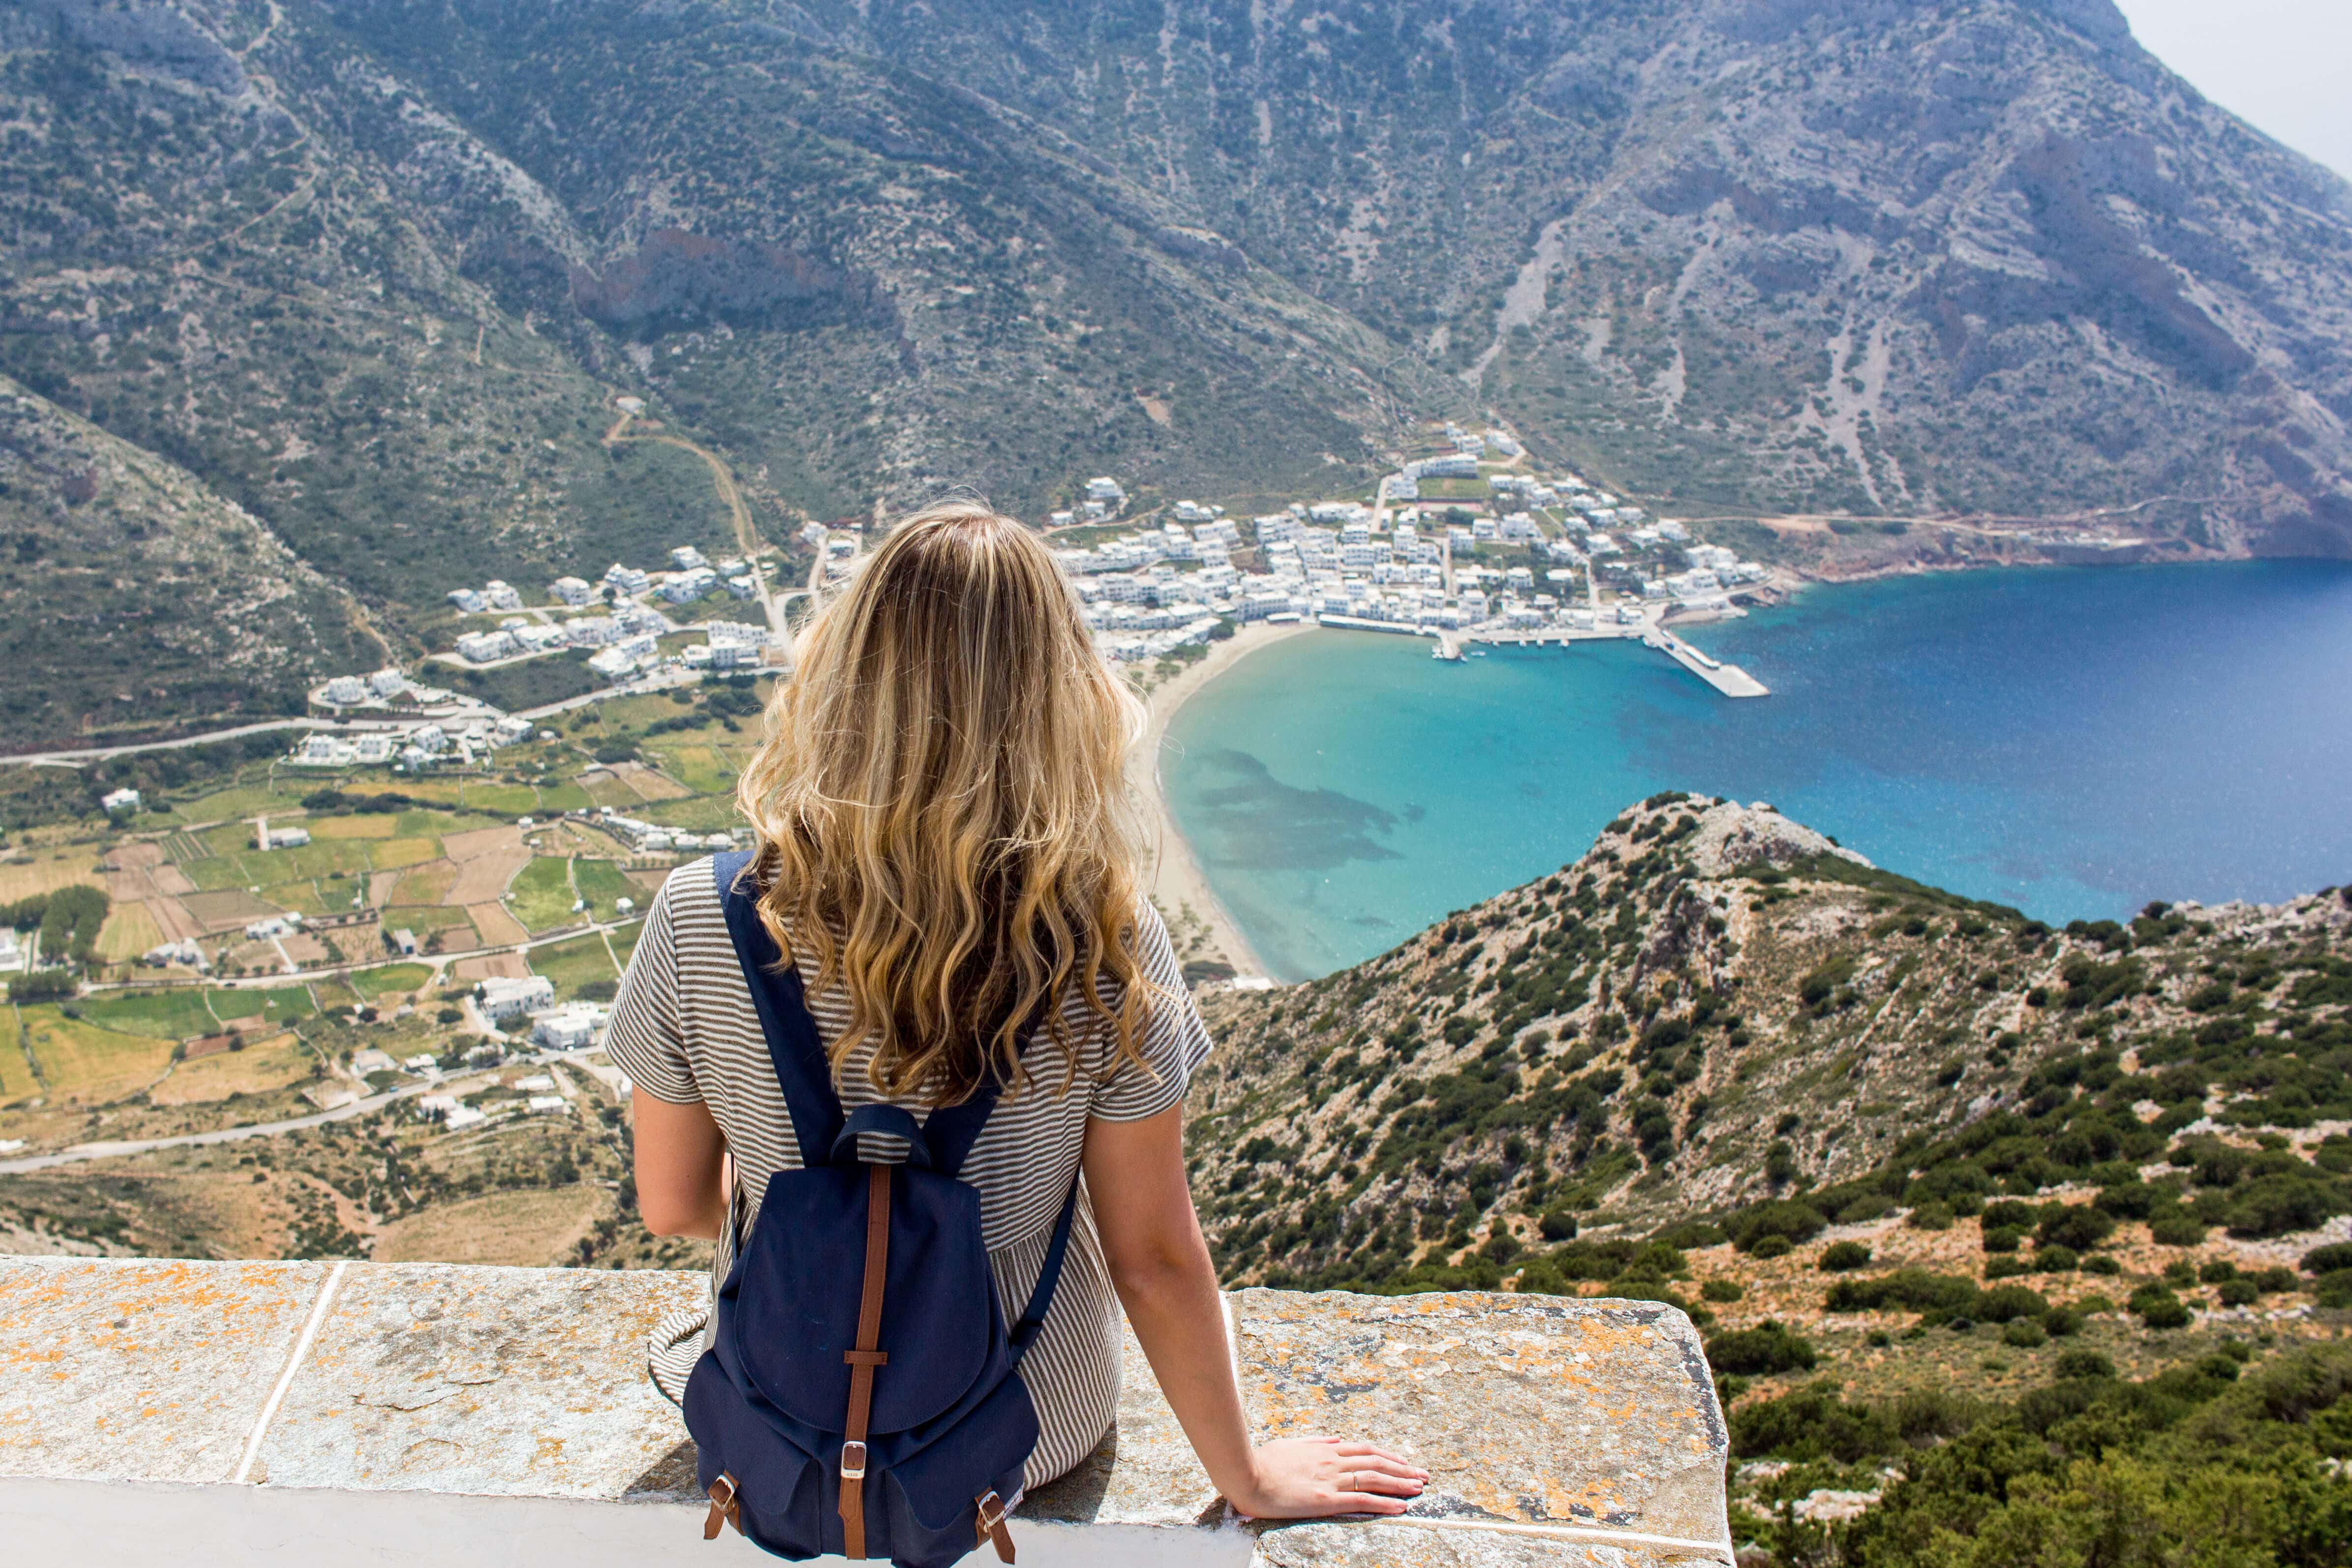 16 female travel bloggers reveal their favorite lesser-known islands - Why you should visit Sifnos in Greece #bucketlist #sifnos #greece